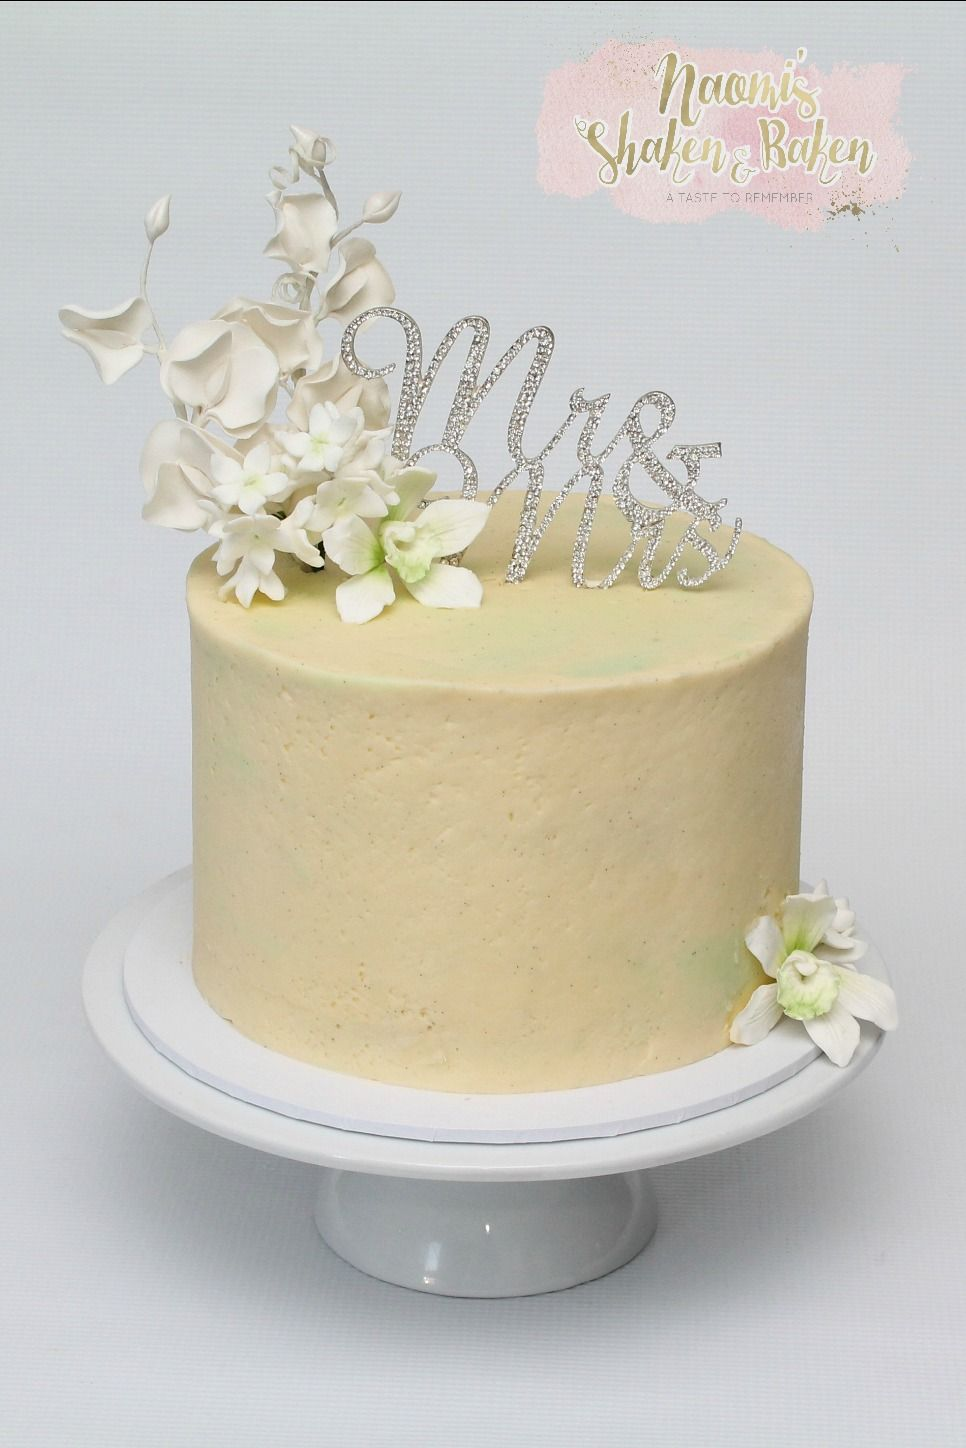 Simple stunning little wedding cake for an intermit gathering ...